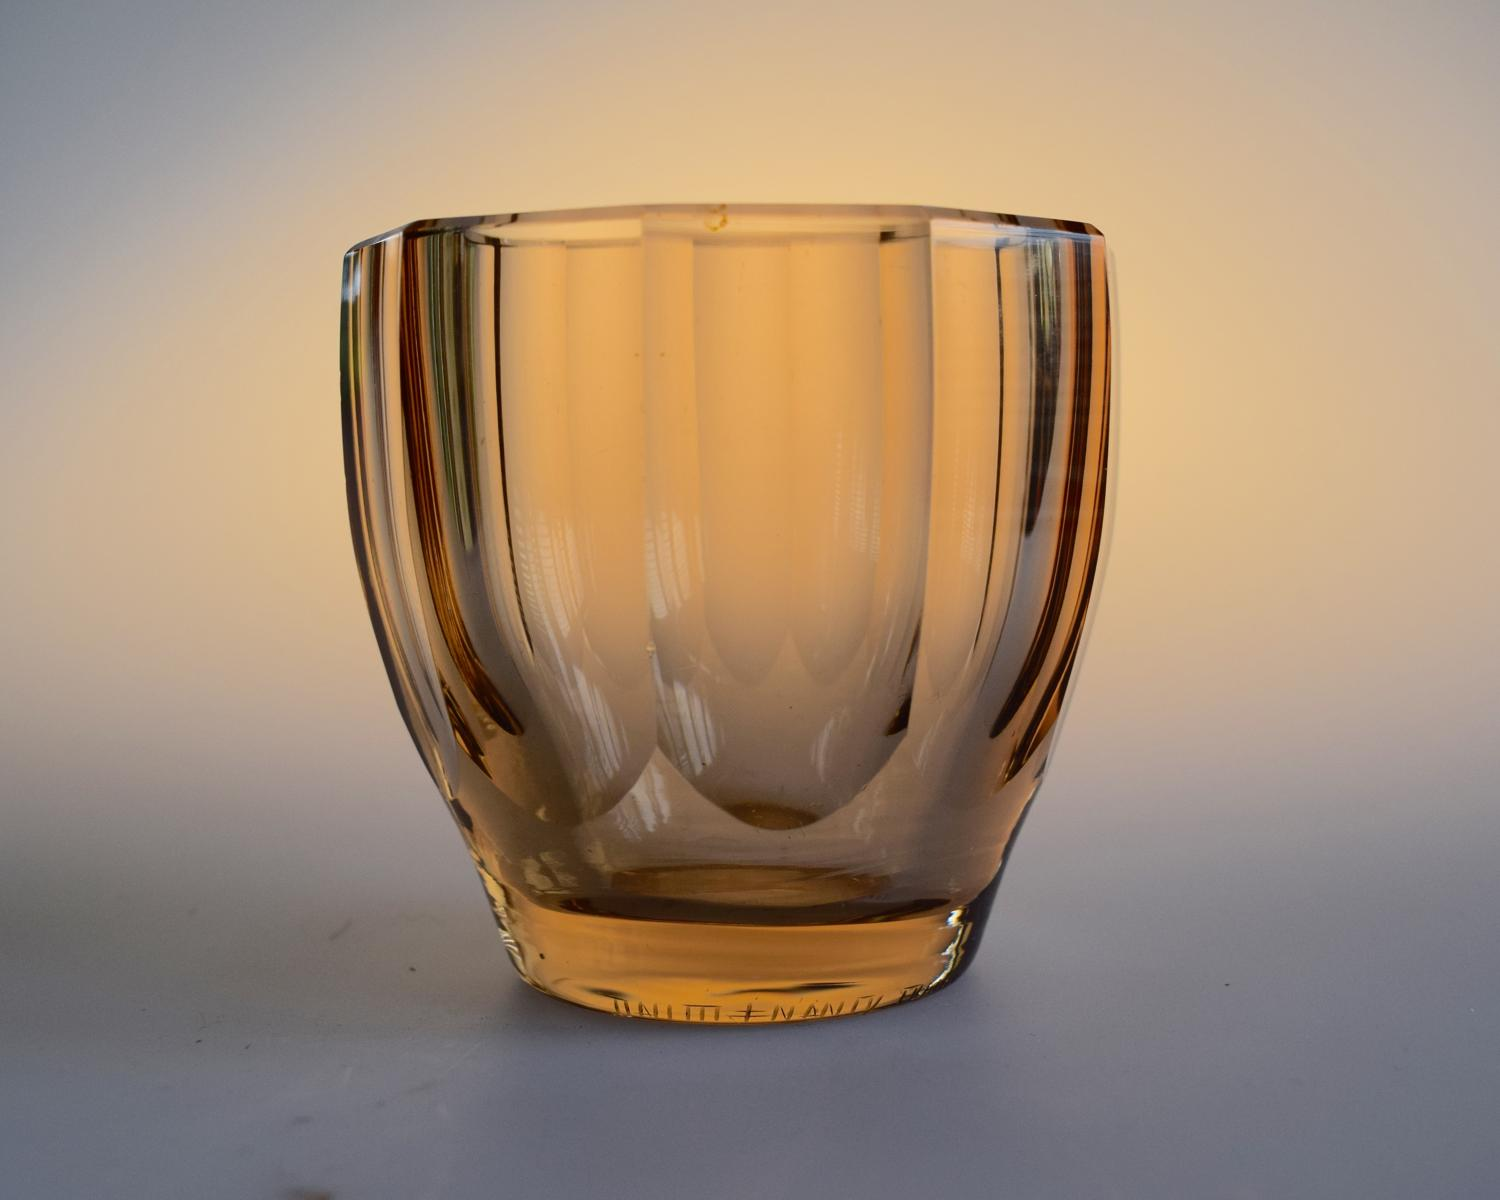 Small brown facetted bowl by Daum.